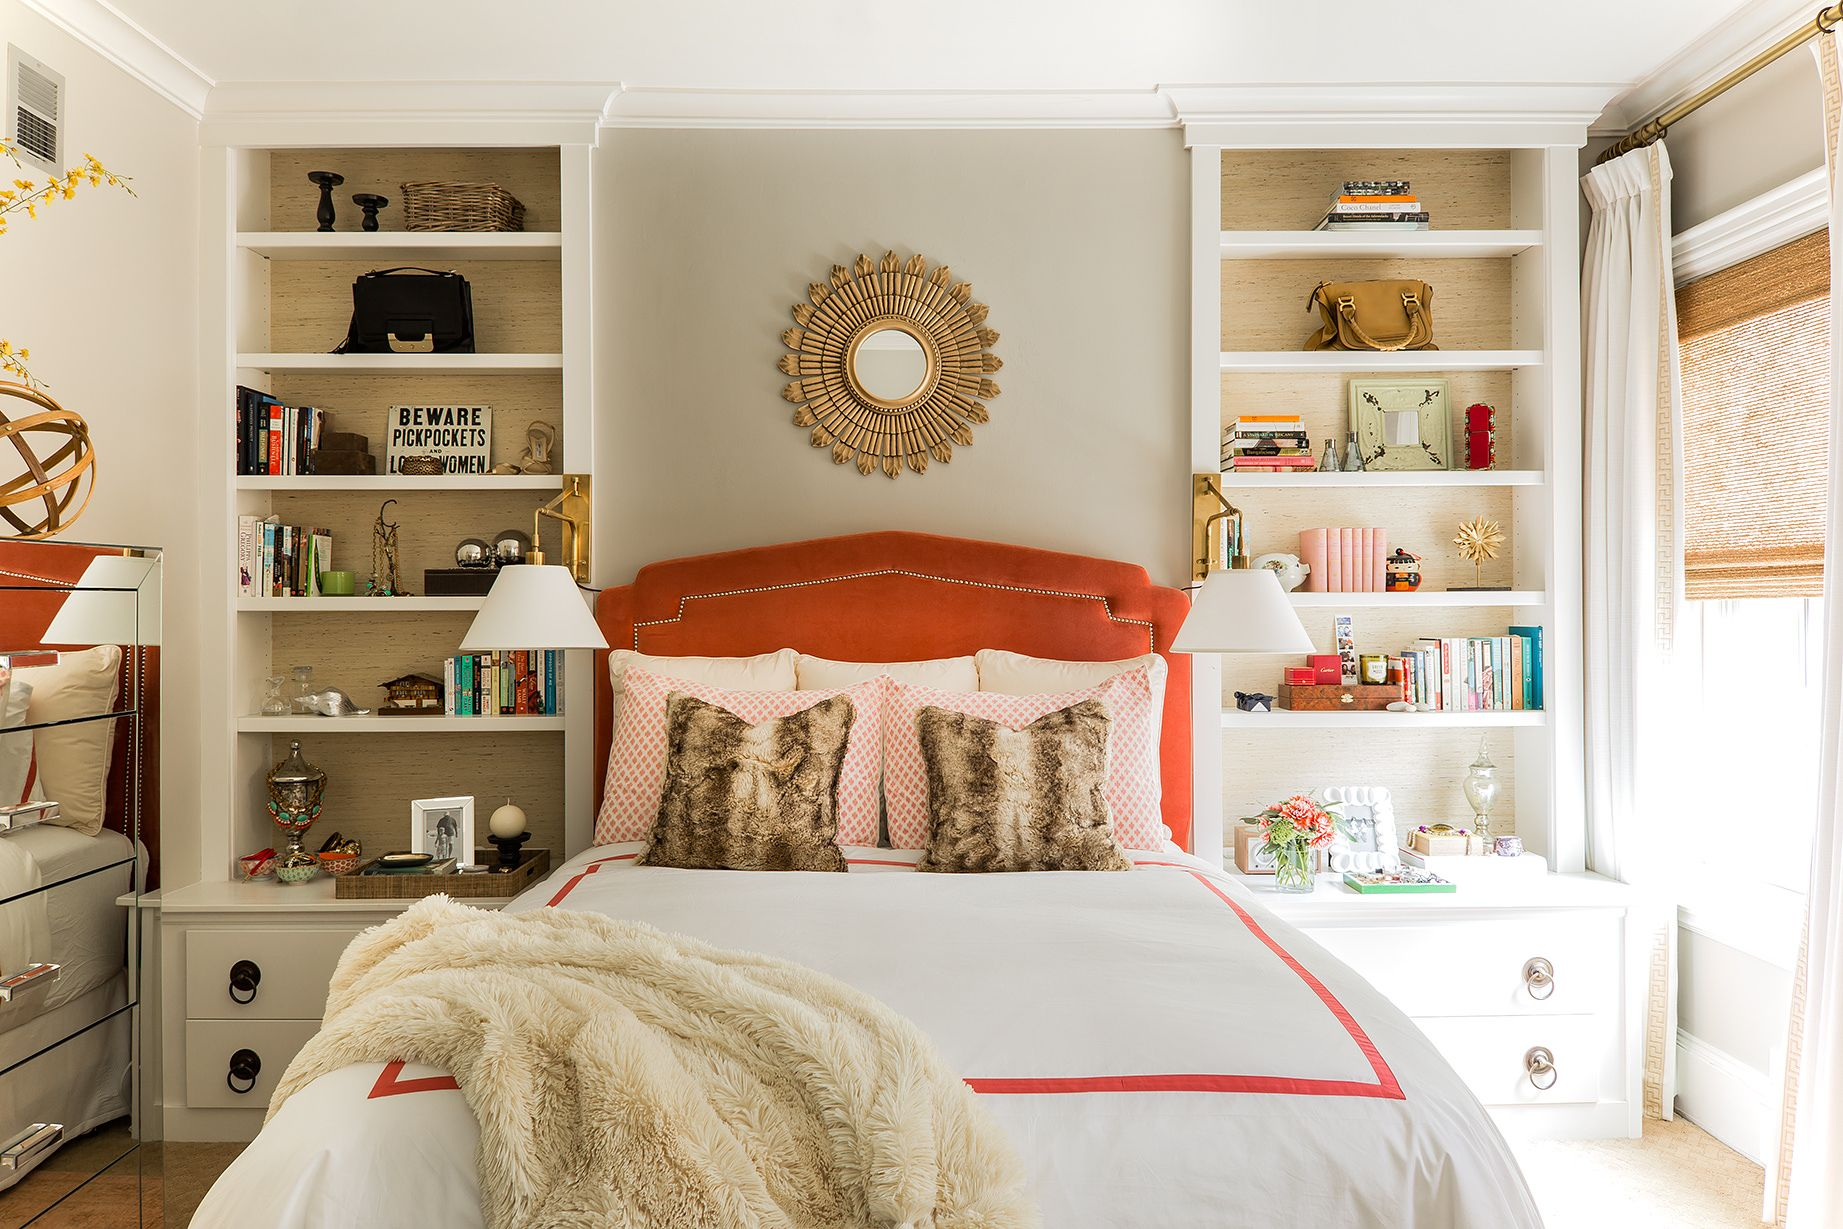 image & 17 Small Bedroom Design Ideas - How to Decorate a Small Bedroom